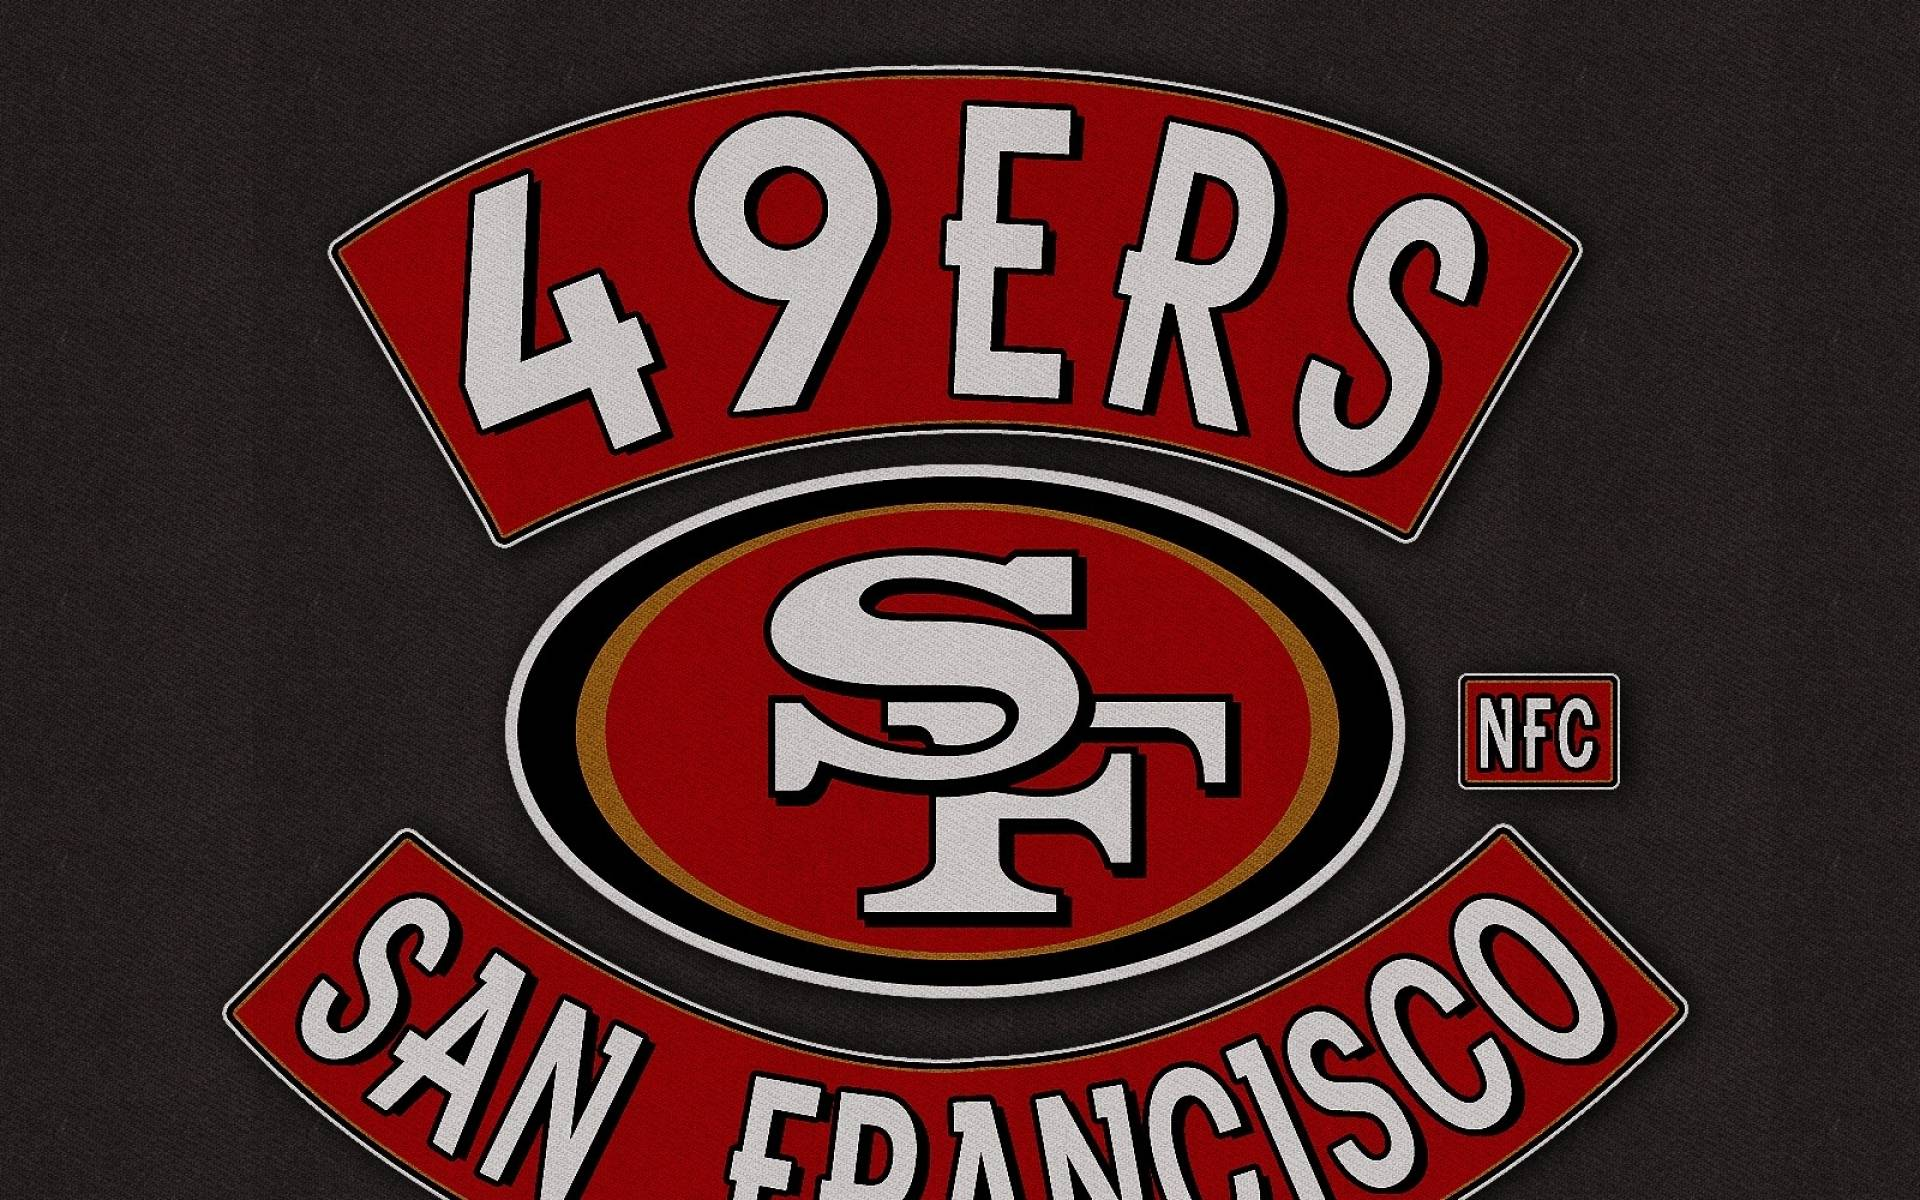 San Francisco 49ers Wallpapers 2015 - Wallpaper Cave